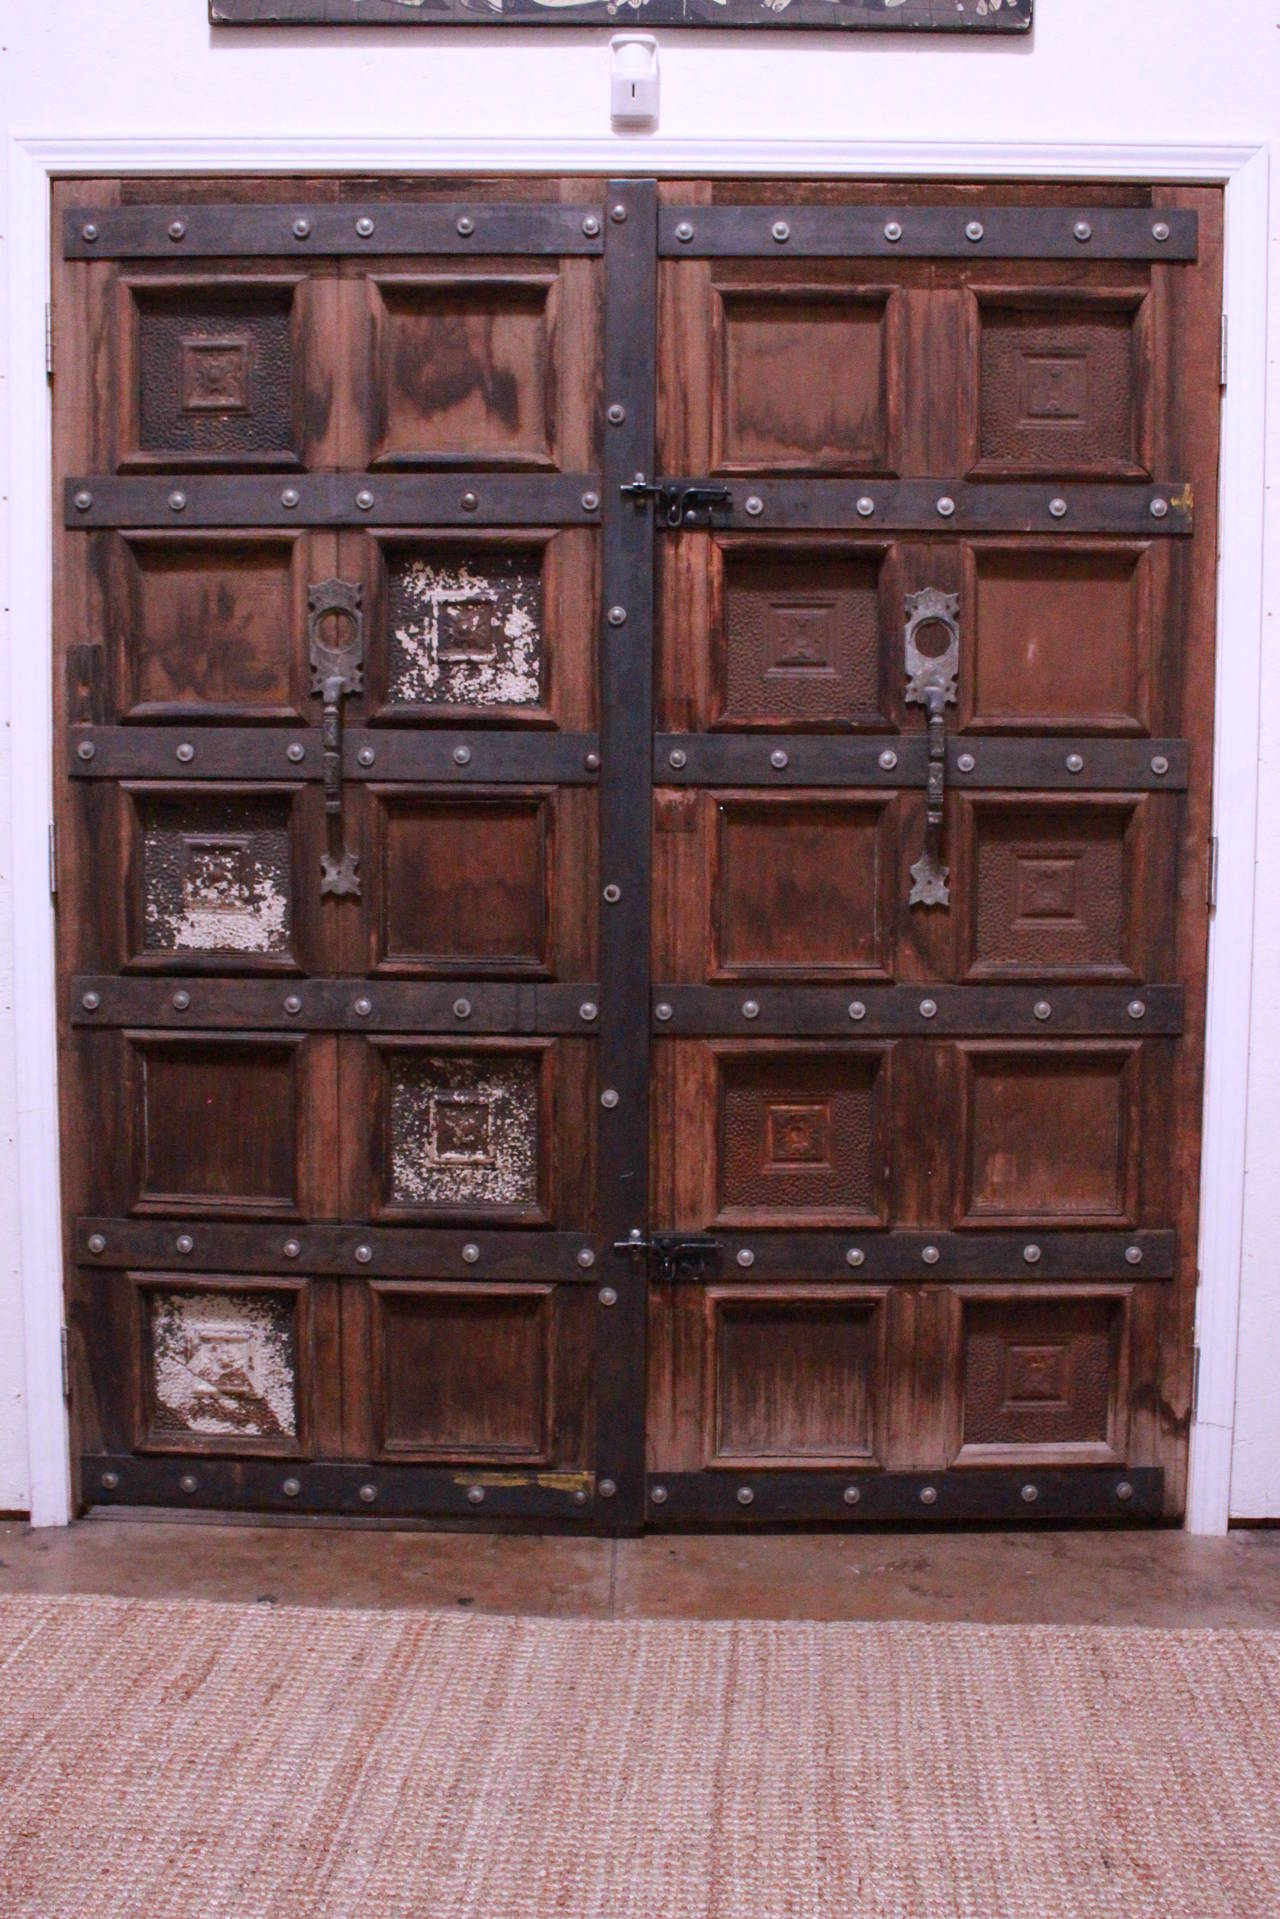 Double wooden door. Doors been reinforced with the metal bars at 1992 by Mateo Ferrer local artist  as shown on the photos. Came from Gypsy Antiques in Hollywood.